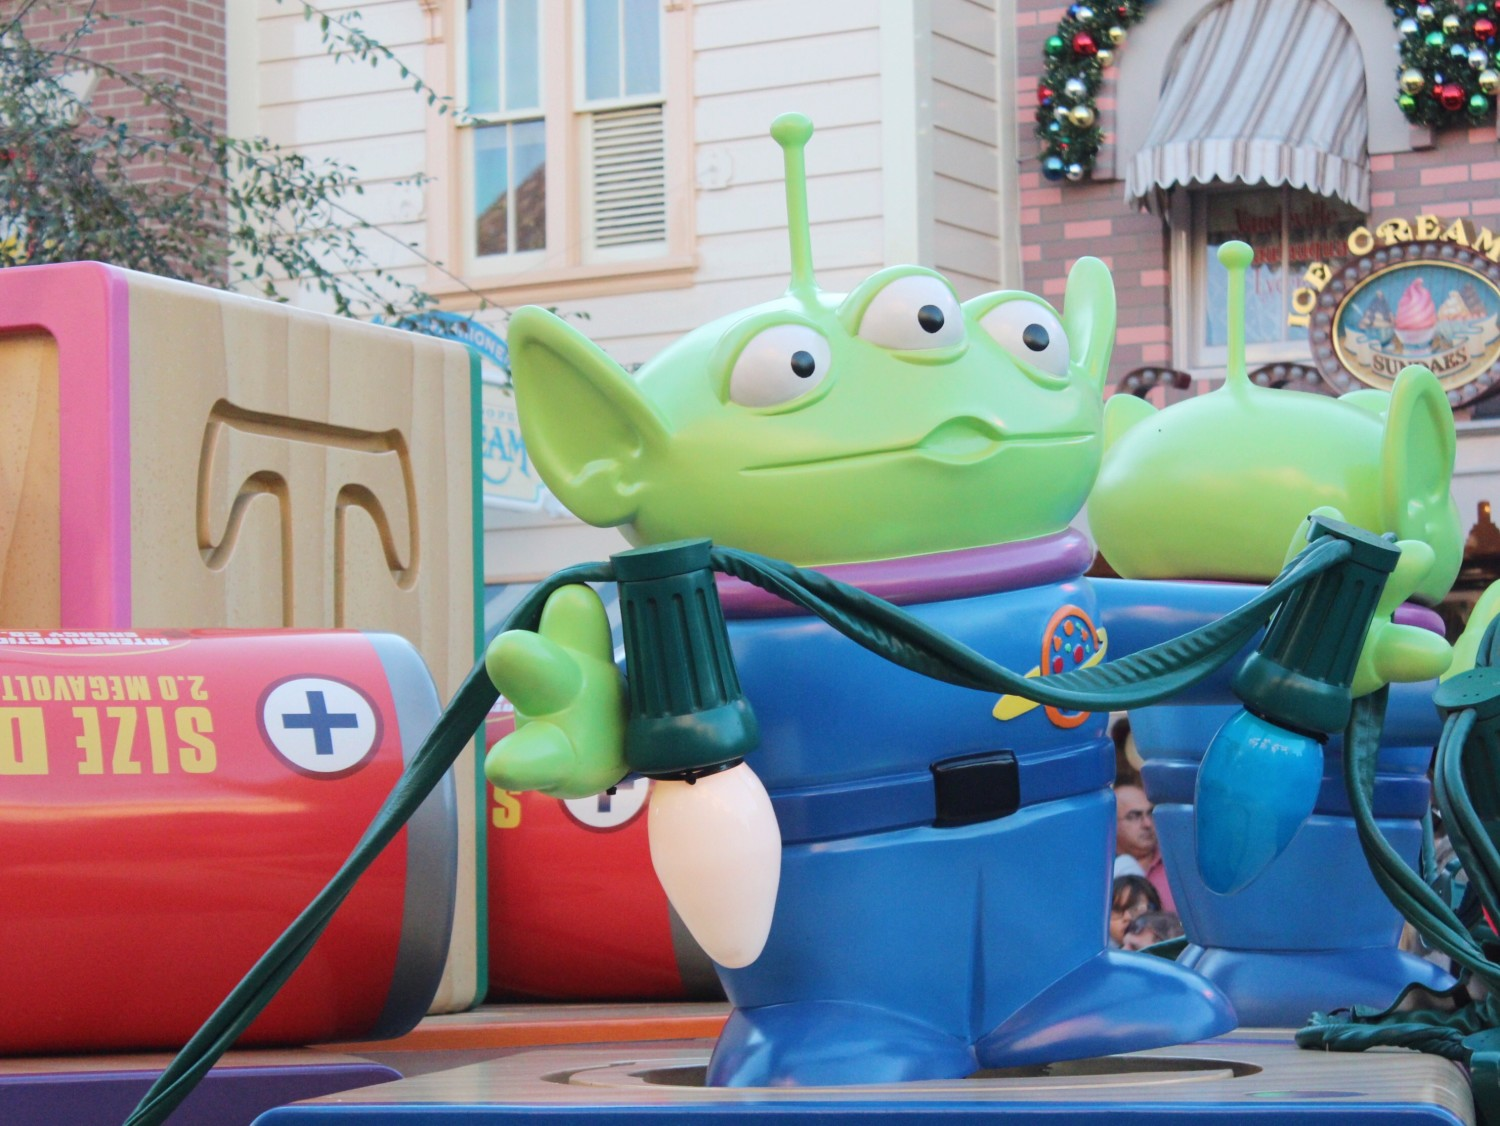 Disneyland A Christmas Fantasy Parade Toy Story